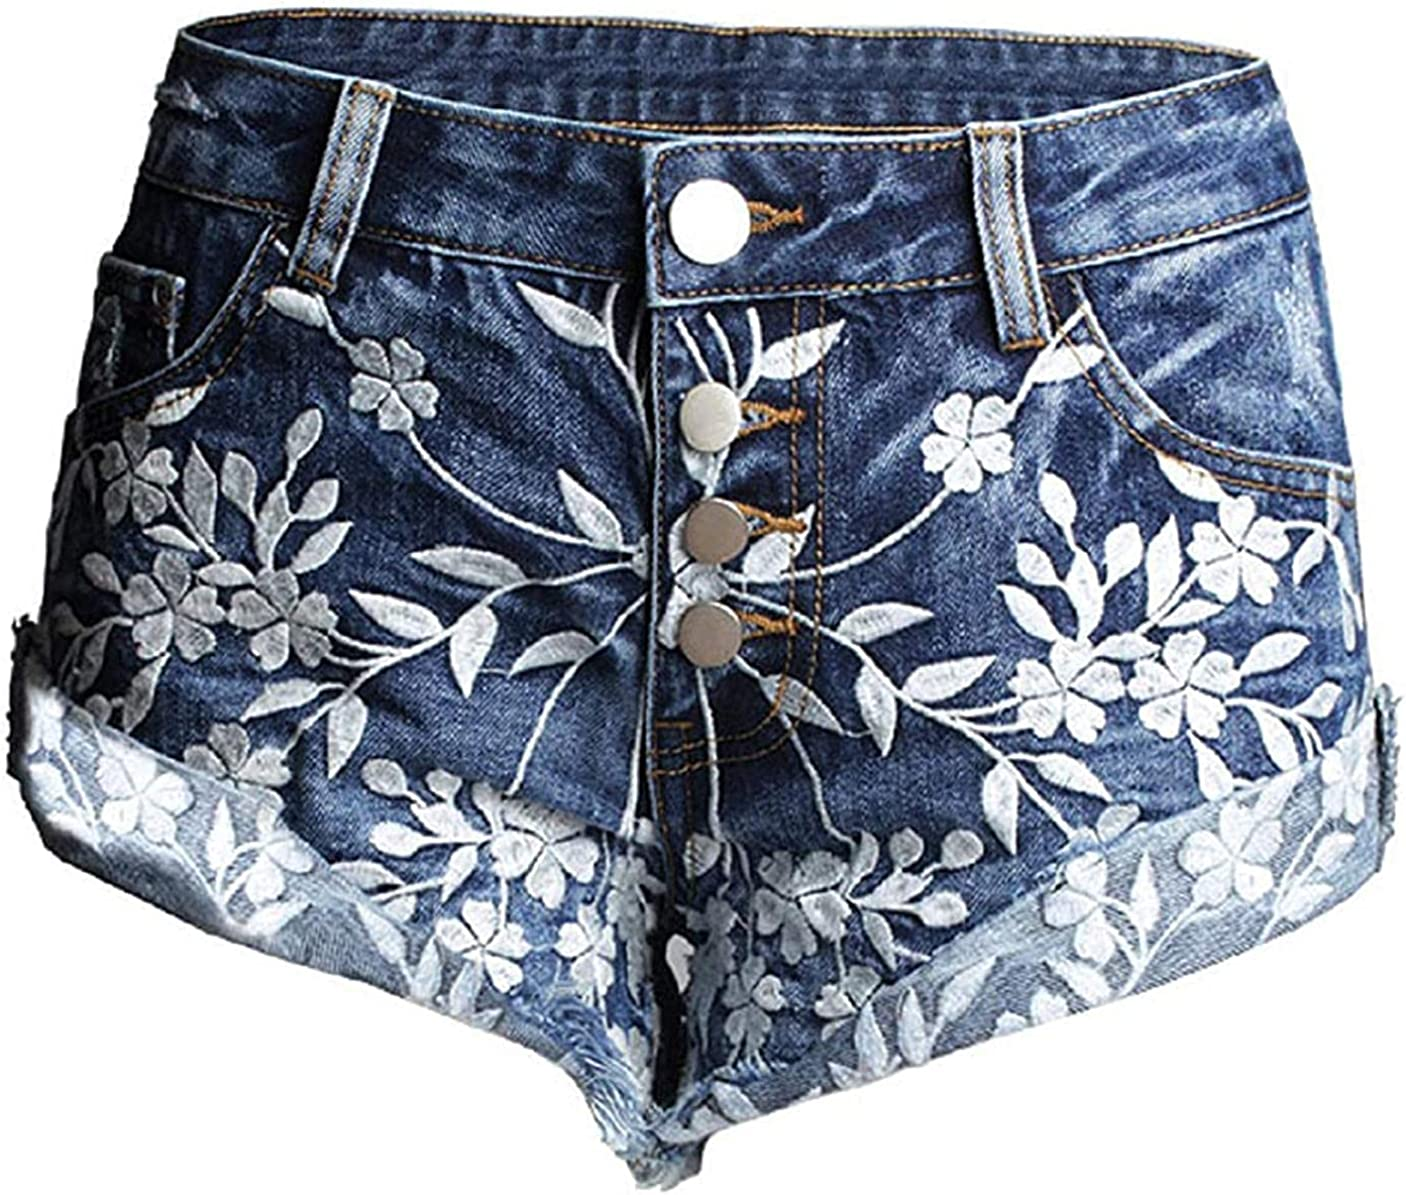 Rsqsjgkert Women's Chic Distressed Low-Rise Embroidered Roll Up Jeans Denim Shorts